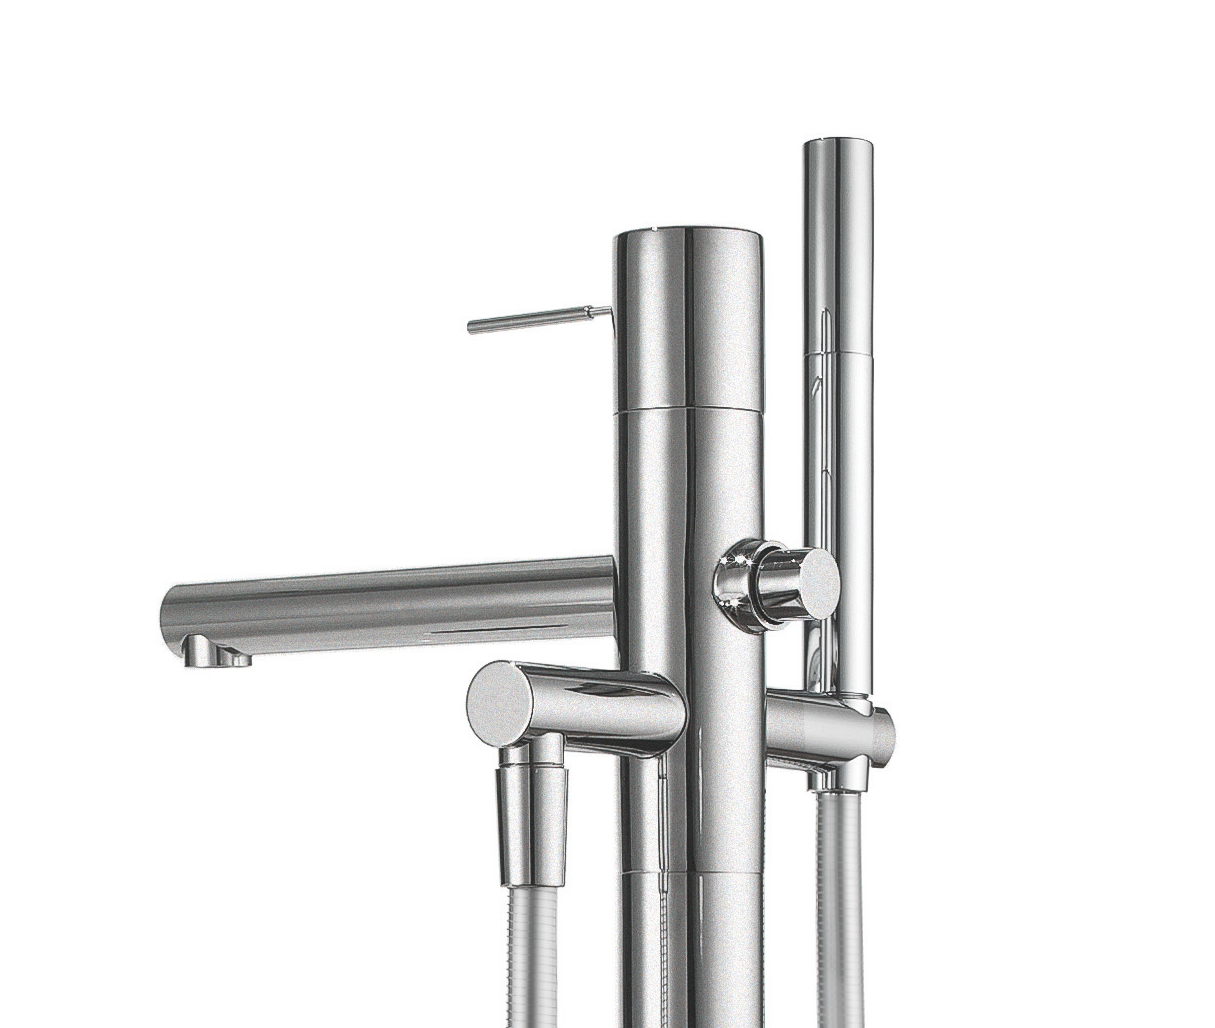 kwc ono tub filler now available in stainless steel finish